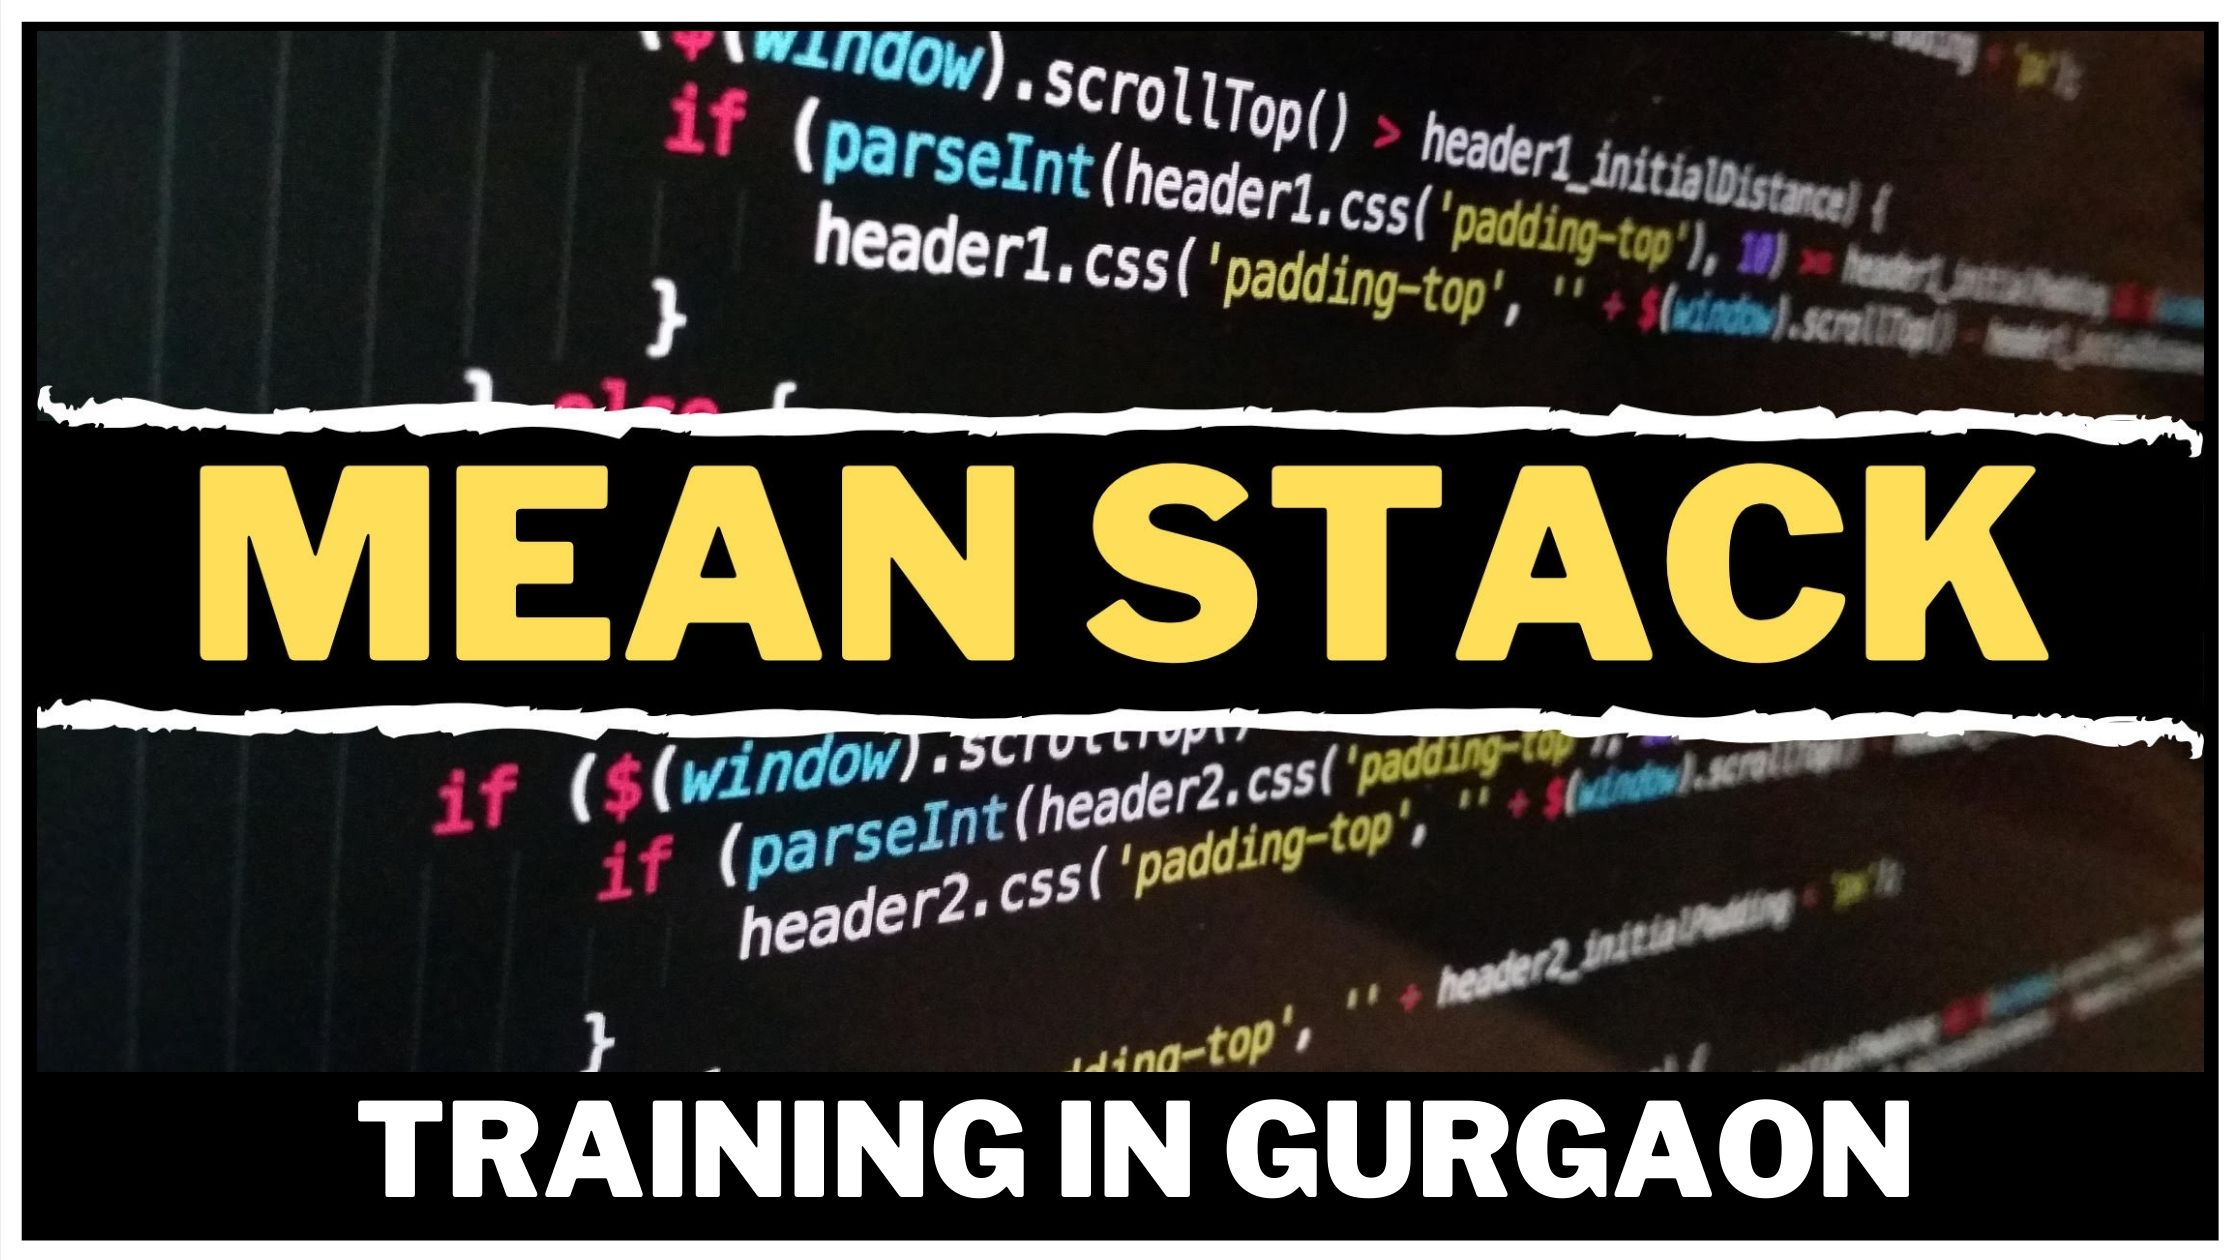 mean stack training_in_gurgaon-background.jpeg